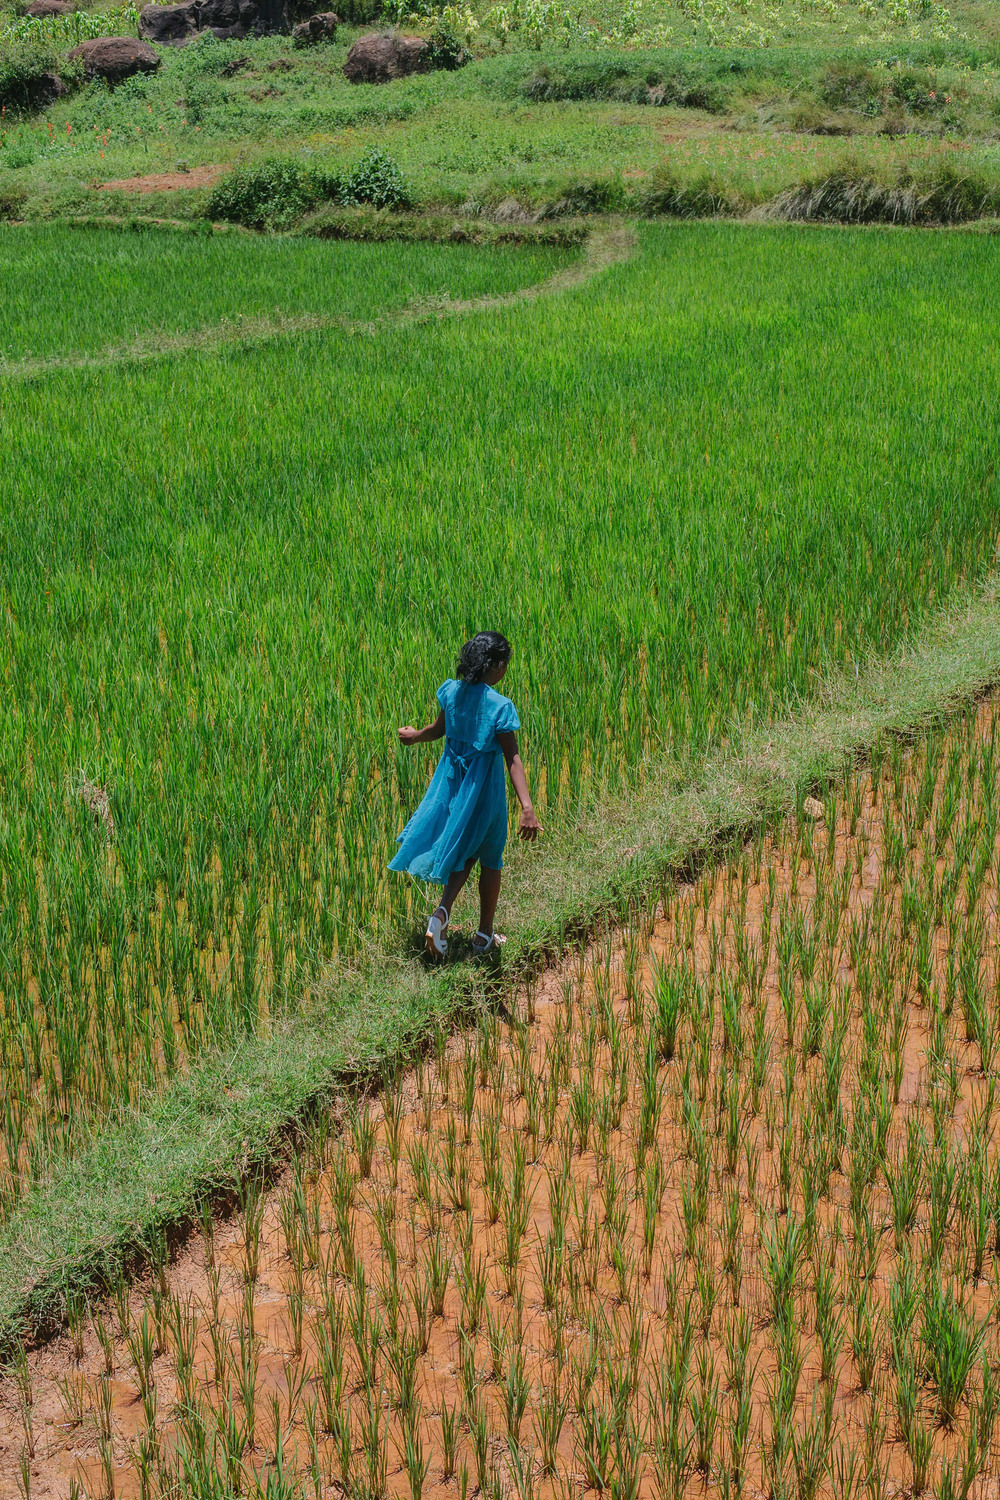 Sitraka walking through the rice fields.